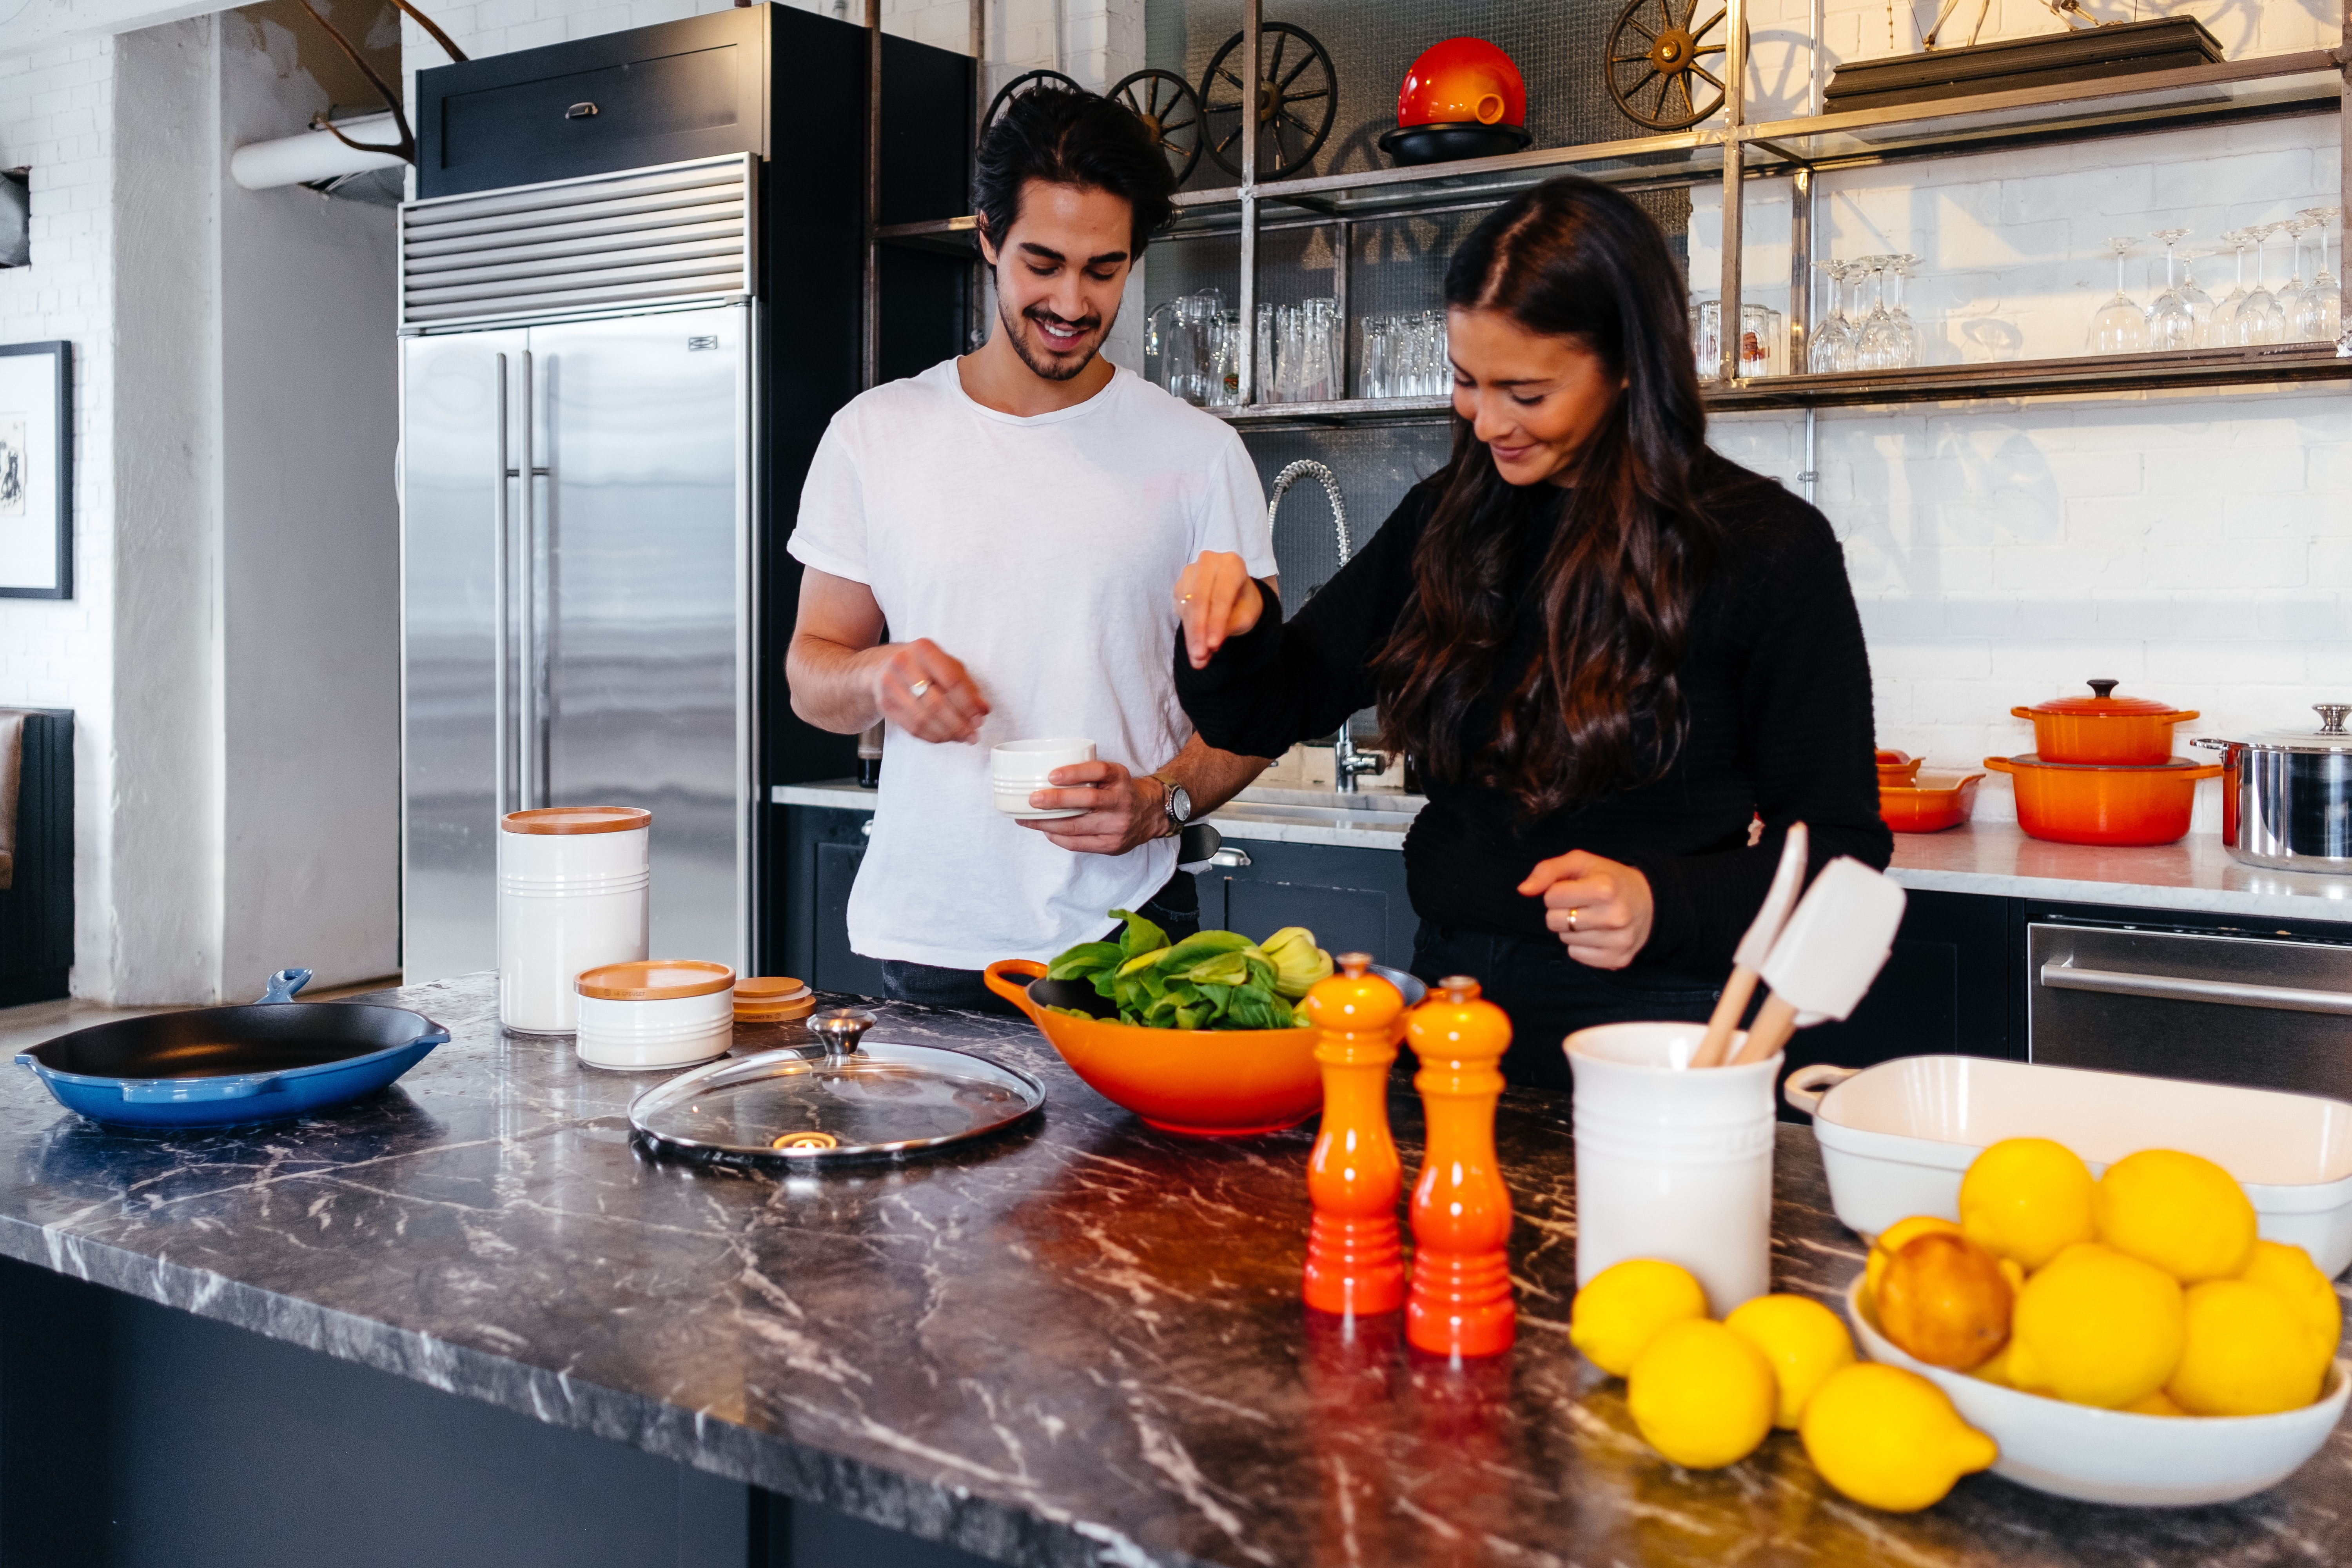 A man and woman cooking together in a kitchen as part of an Incentive Experience | BCD Meetings & Events